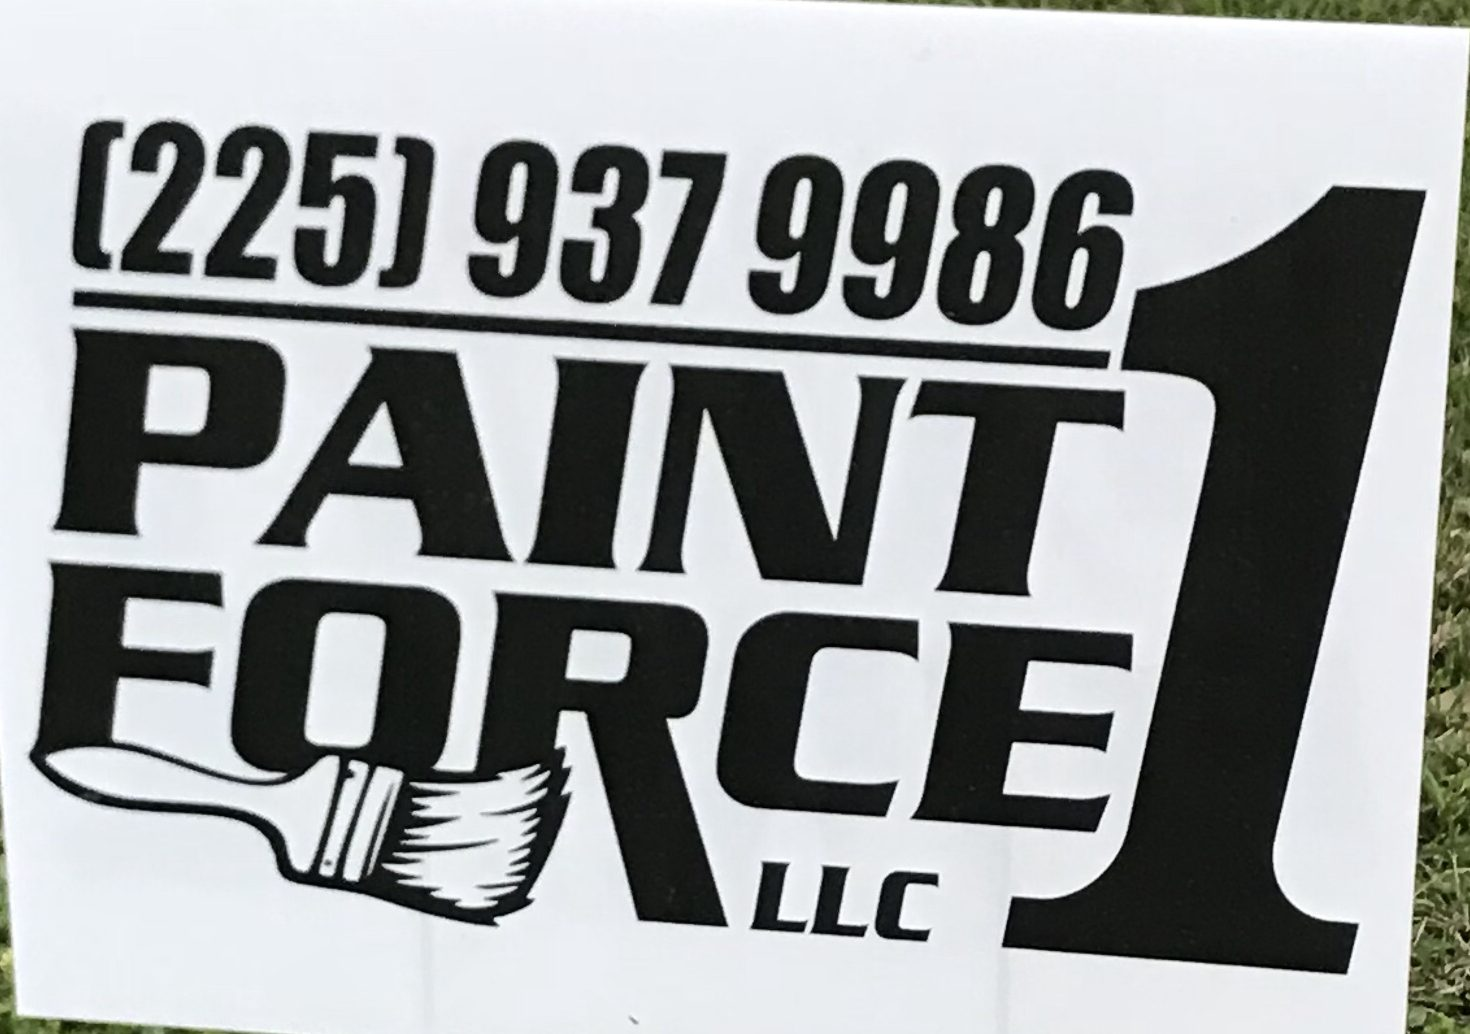 PaintForce1, LLC Painting Service in Baton Rouge,La.